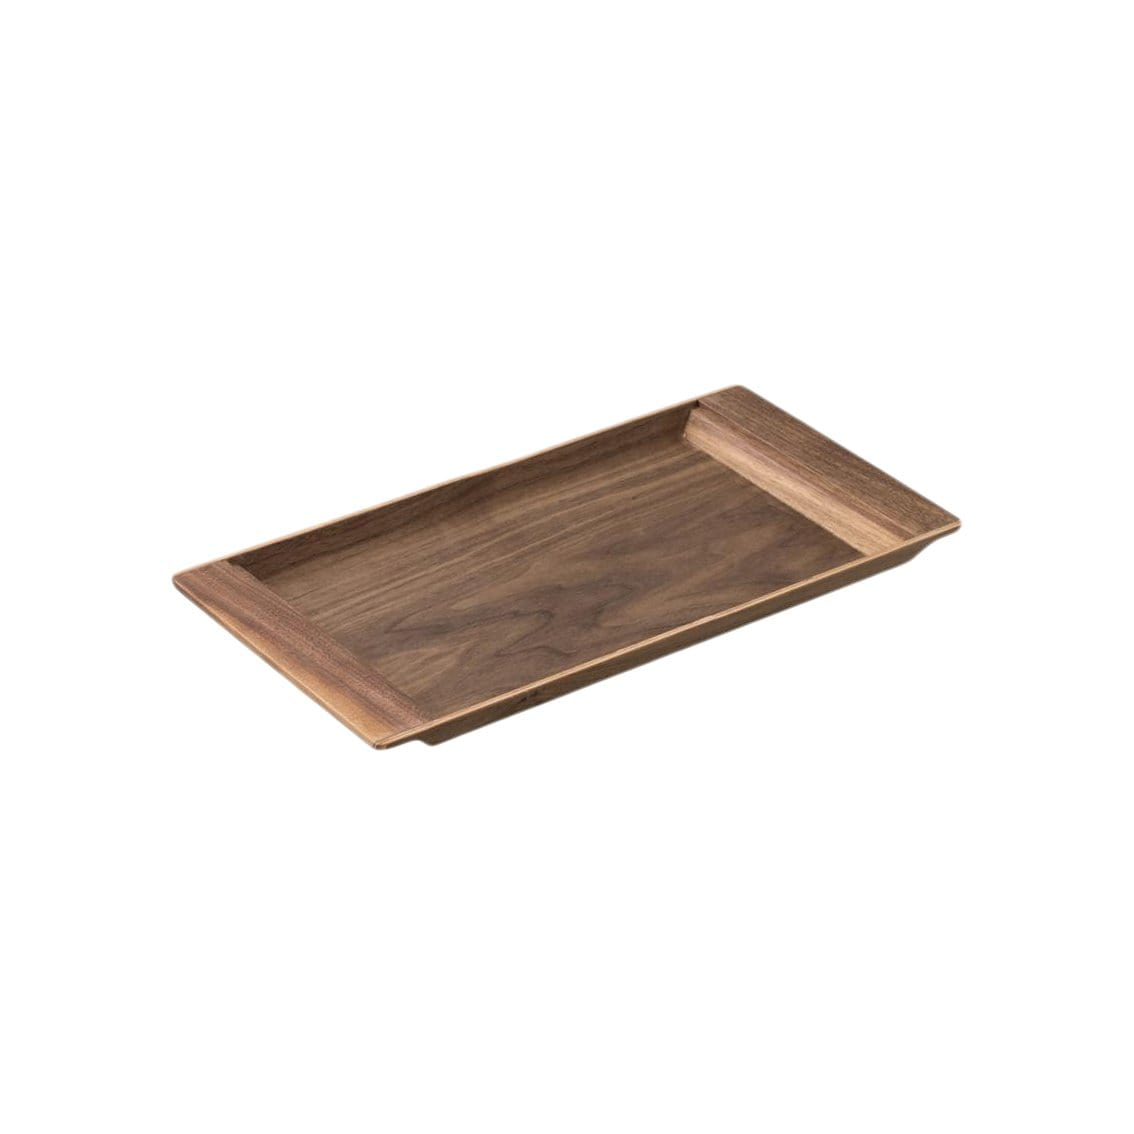 Sepia Medium Nonslip Tray